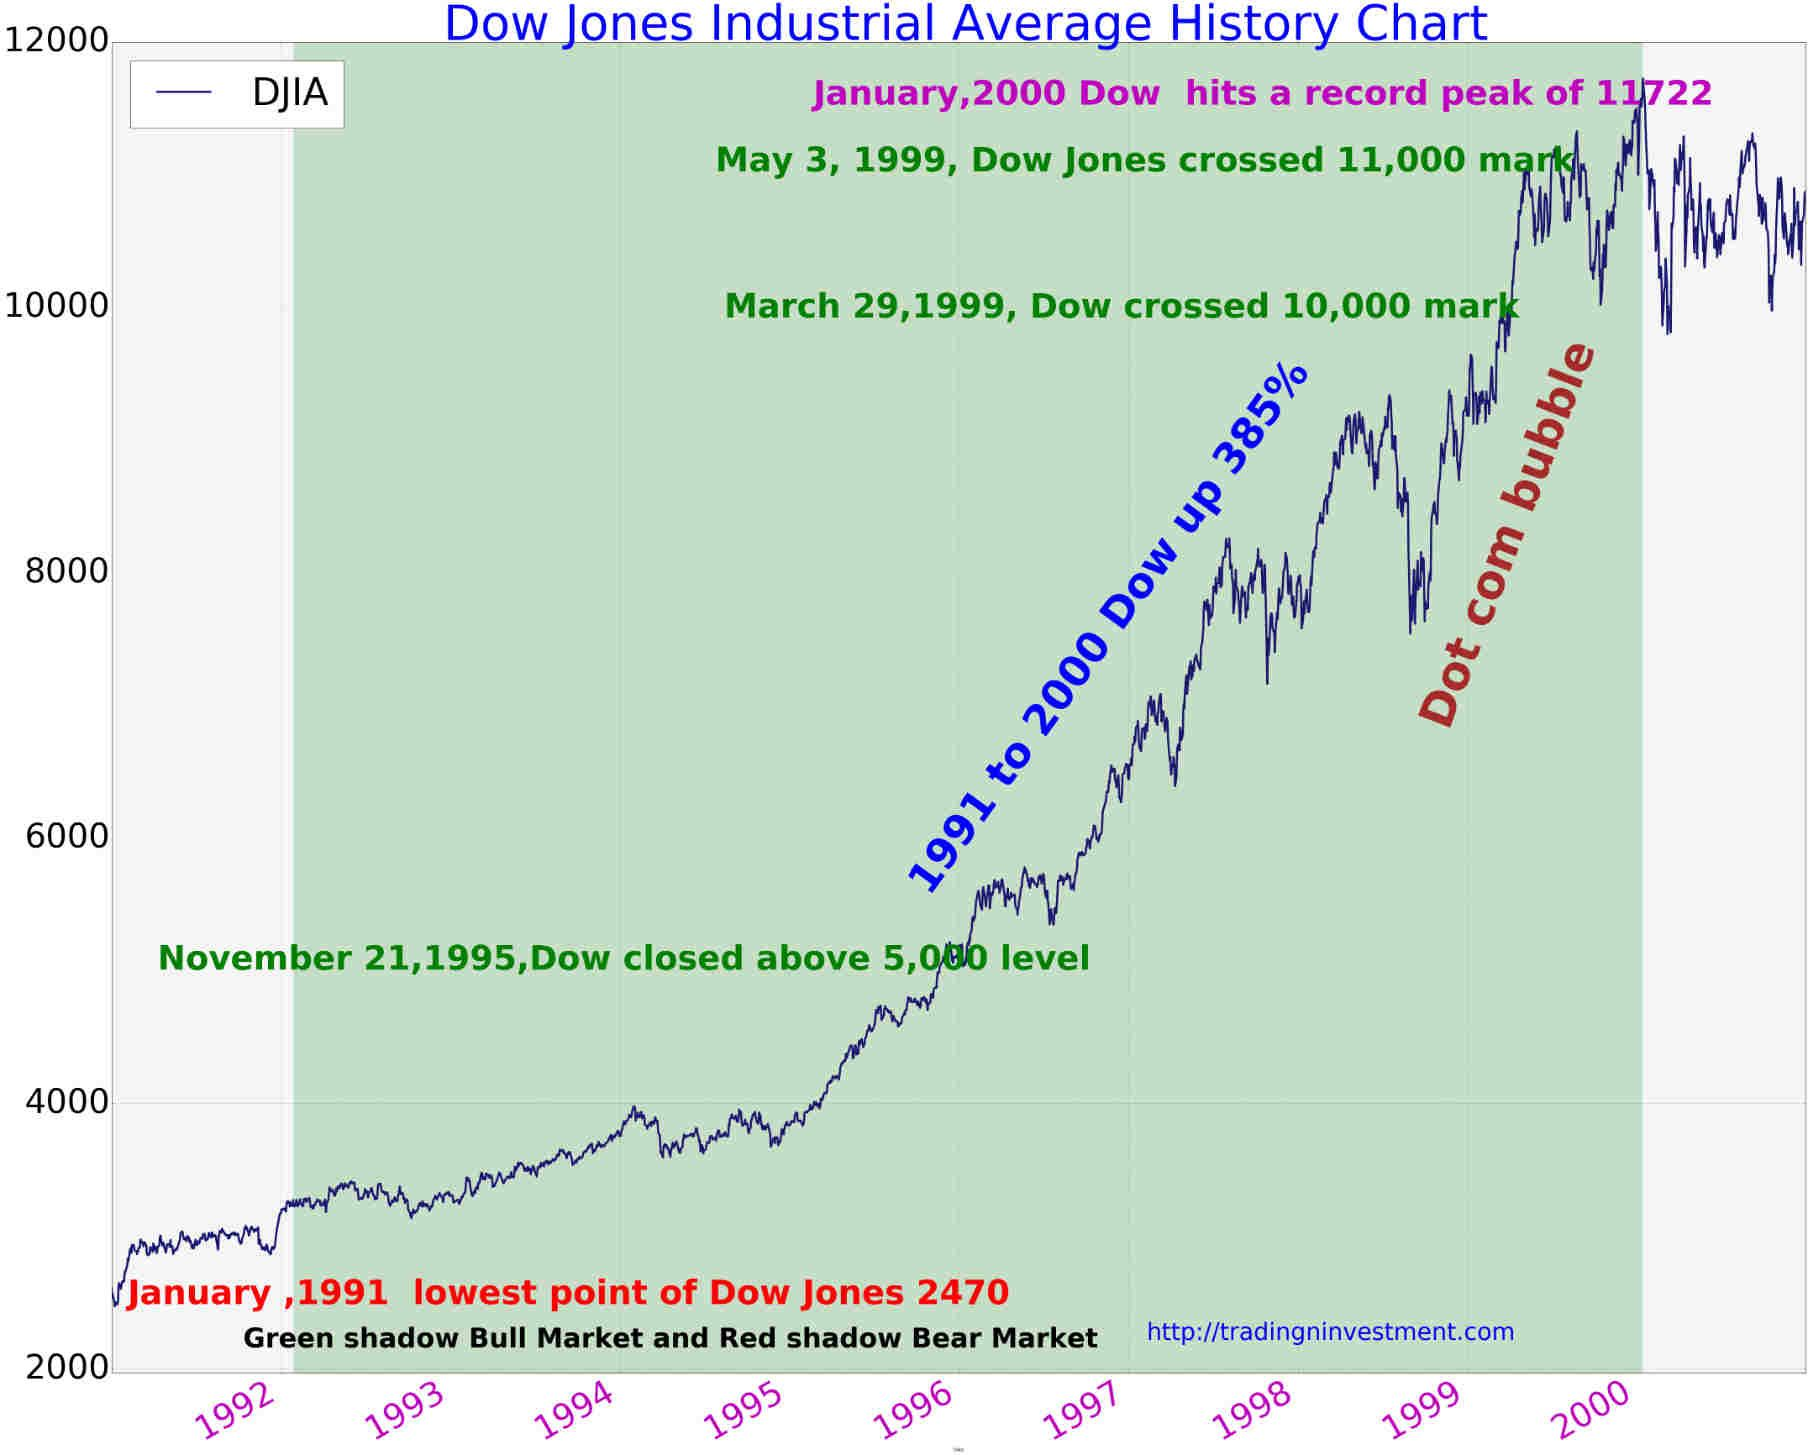 Dow jones industrial average chart 1991 to 2000 investment and